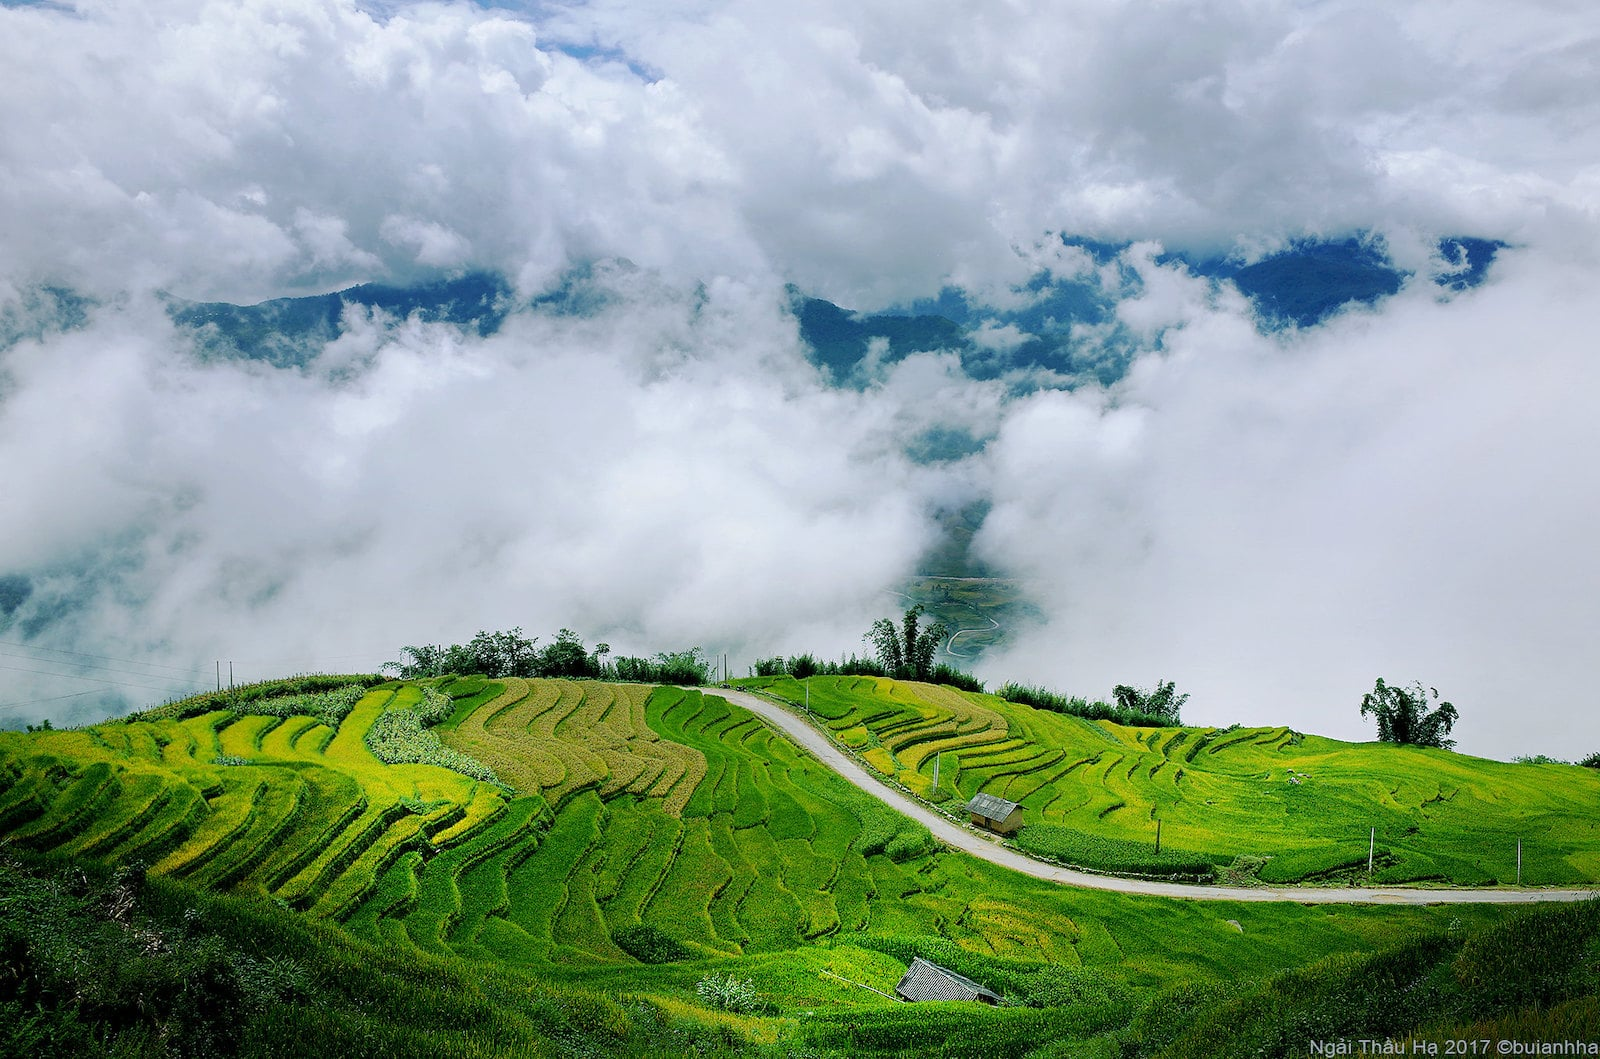 Image of rice paddy fields in Lao Cai, Vietnam